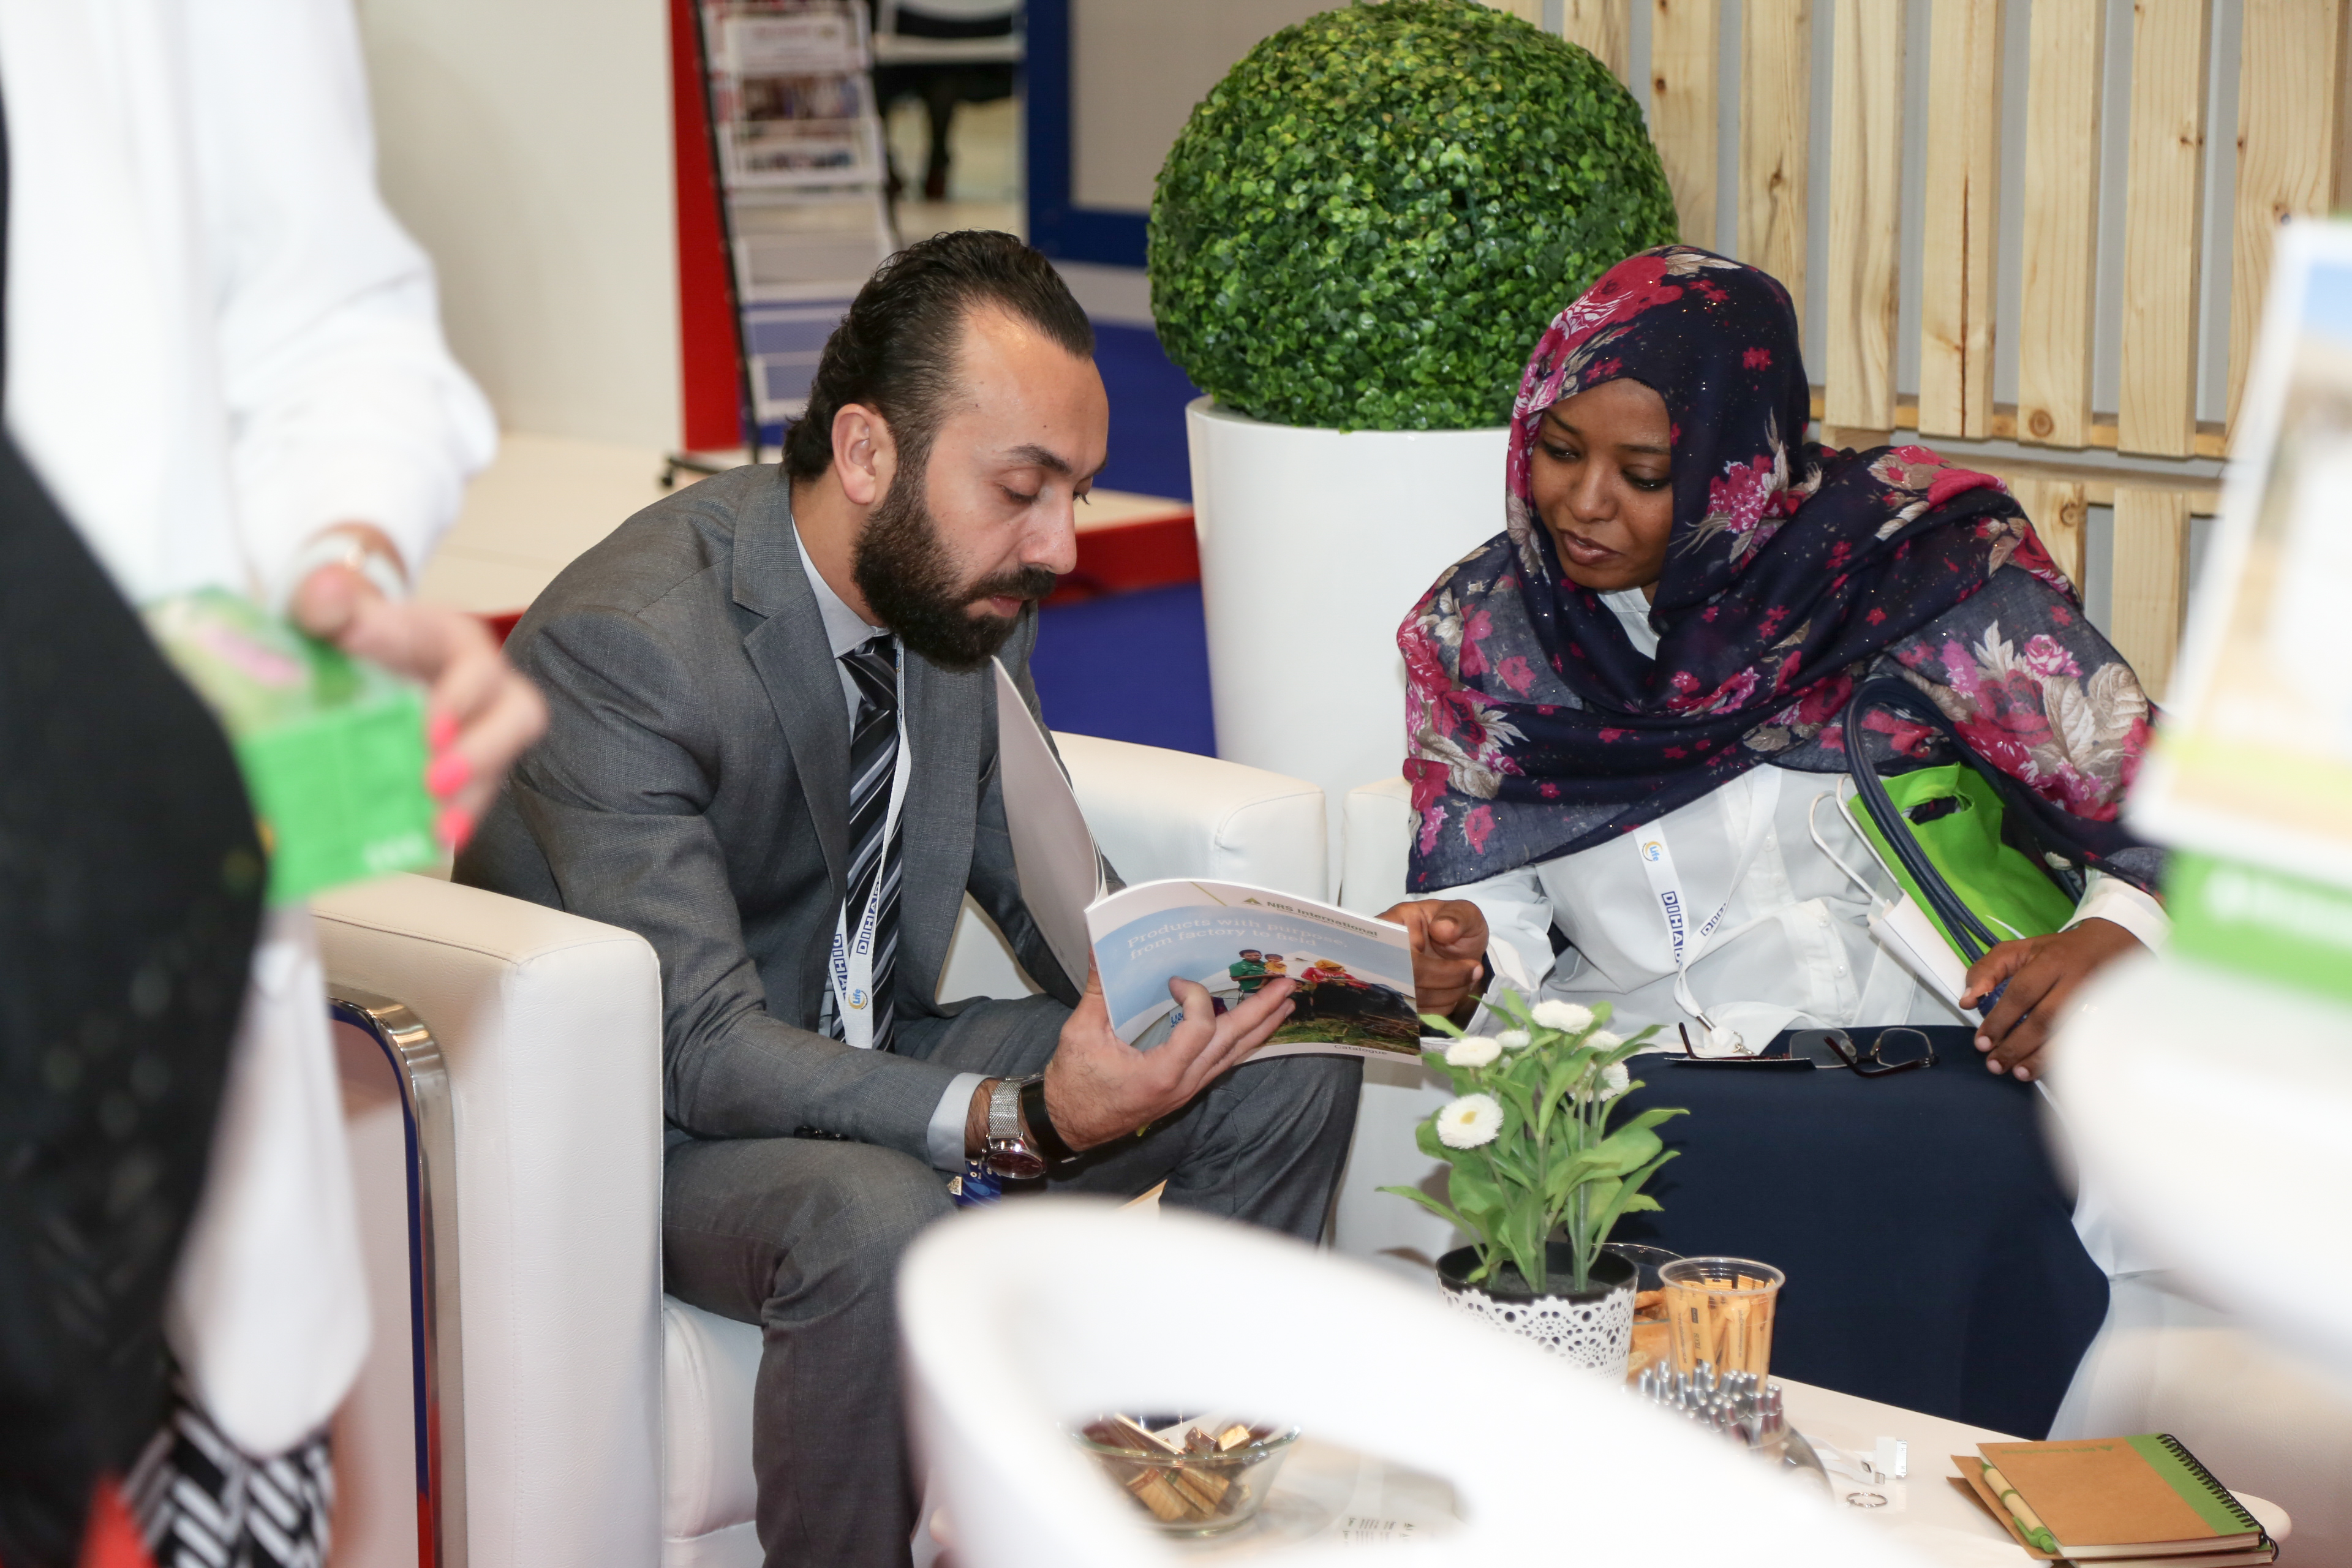 NRS Relief showcase booklets at DIHAD 2018